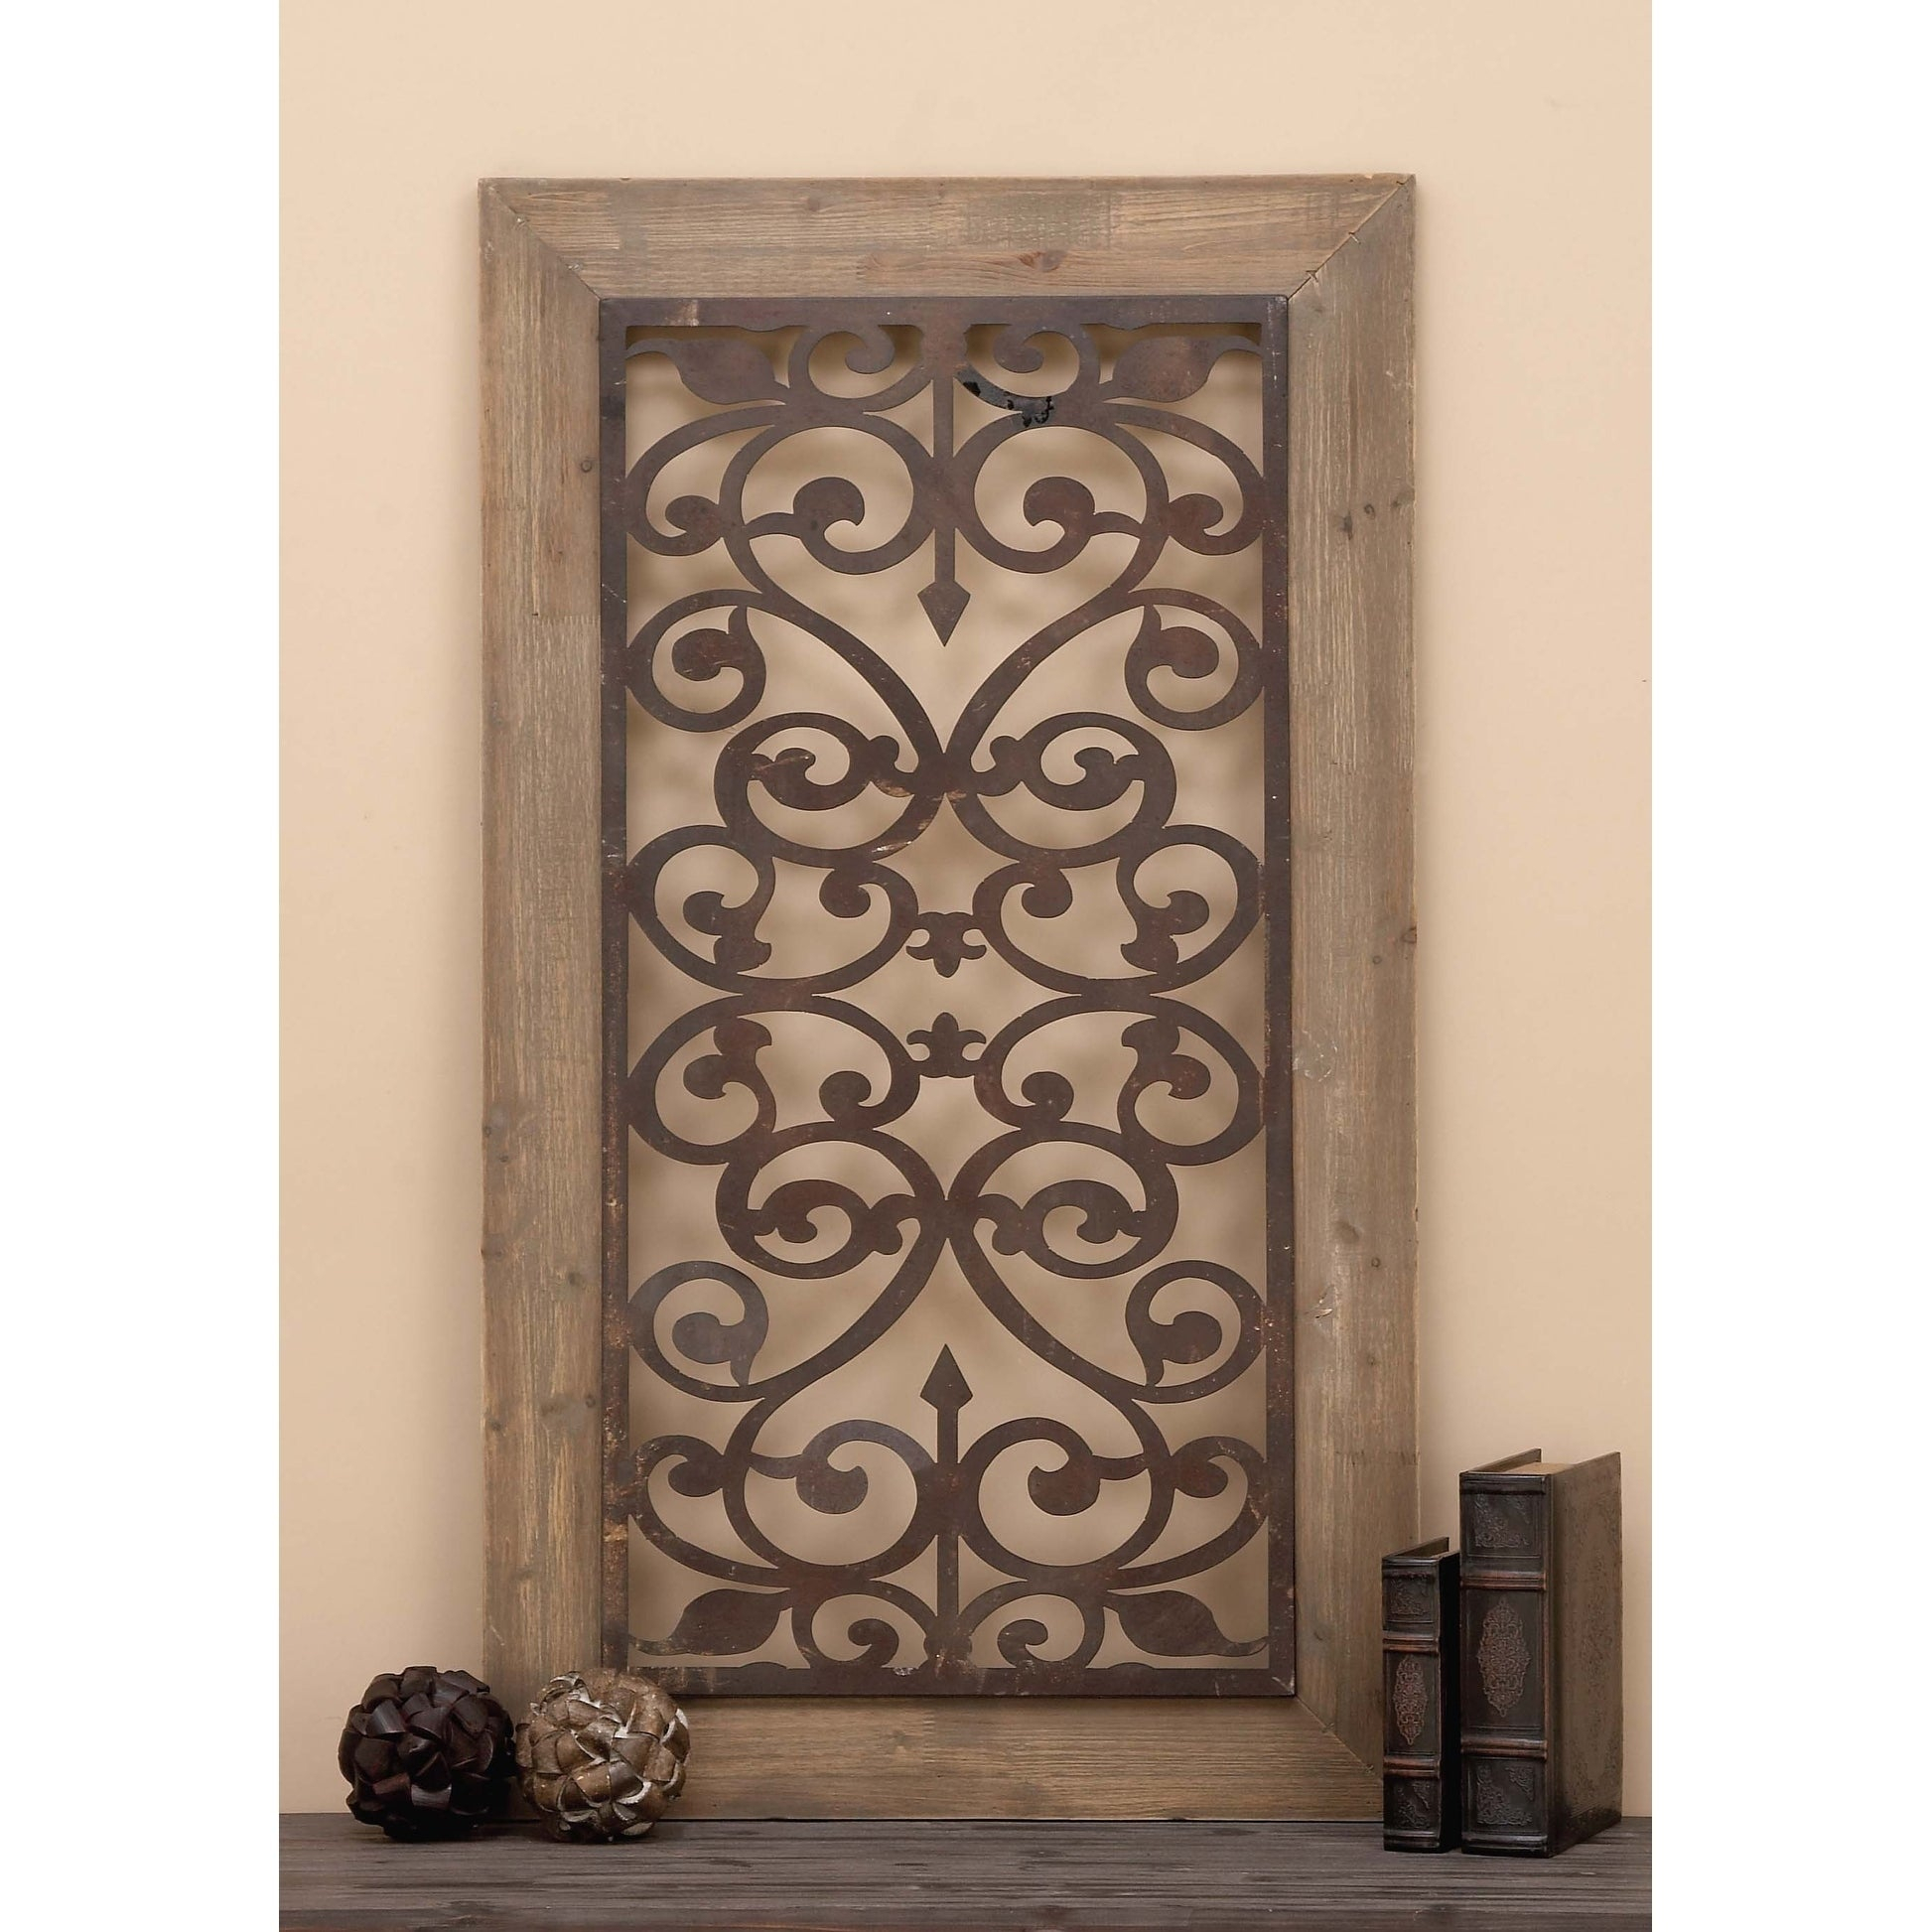 "Rings Wall Decor By Wrought Studio Throughout Popular Shop 26"" X 46"" Distressed Wood & Brown Metal Wall Art Panel W (Gallery 15 of 20)"